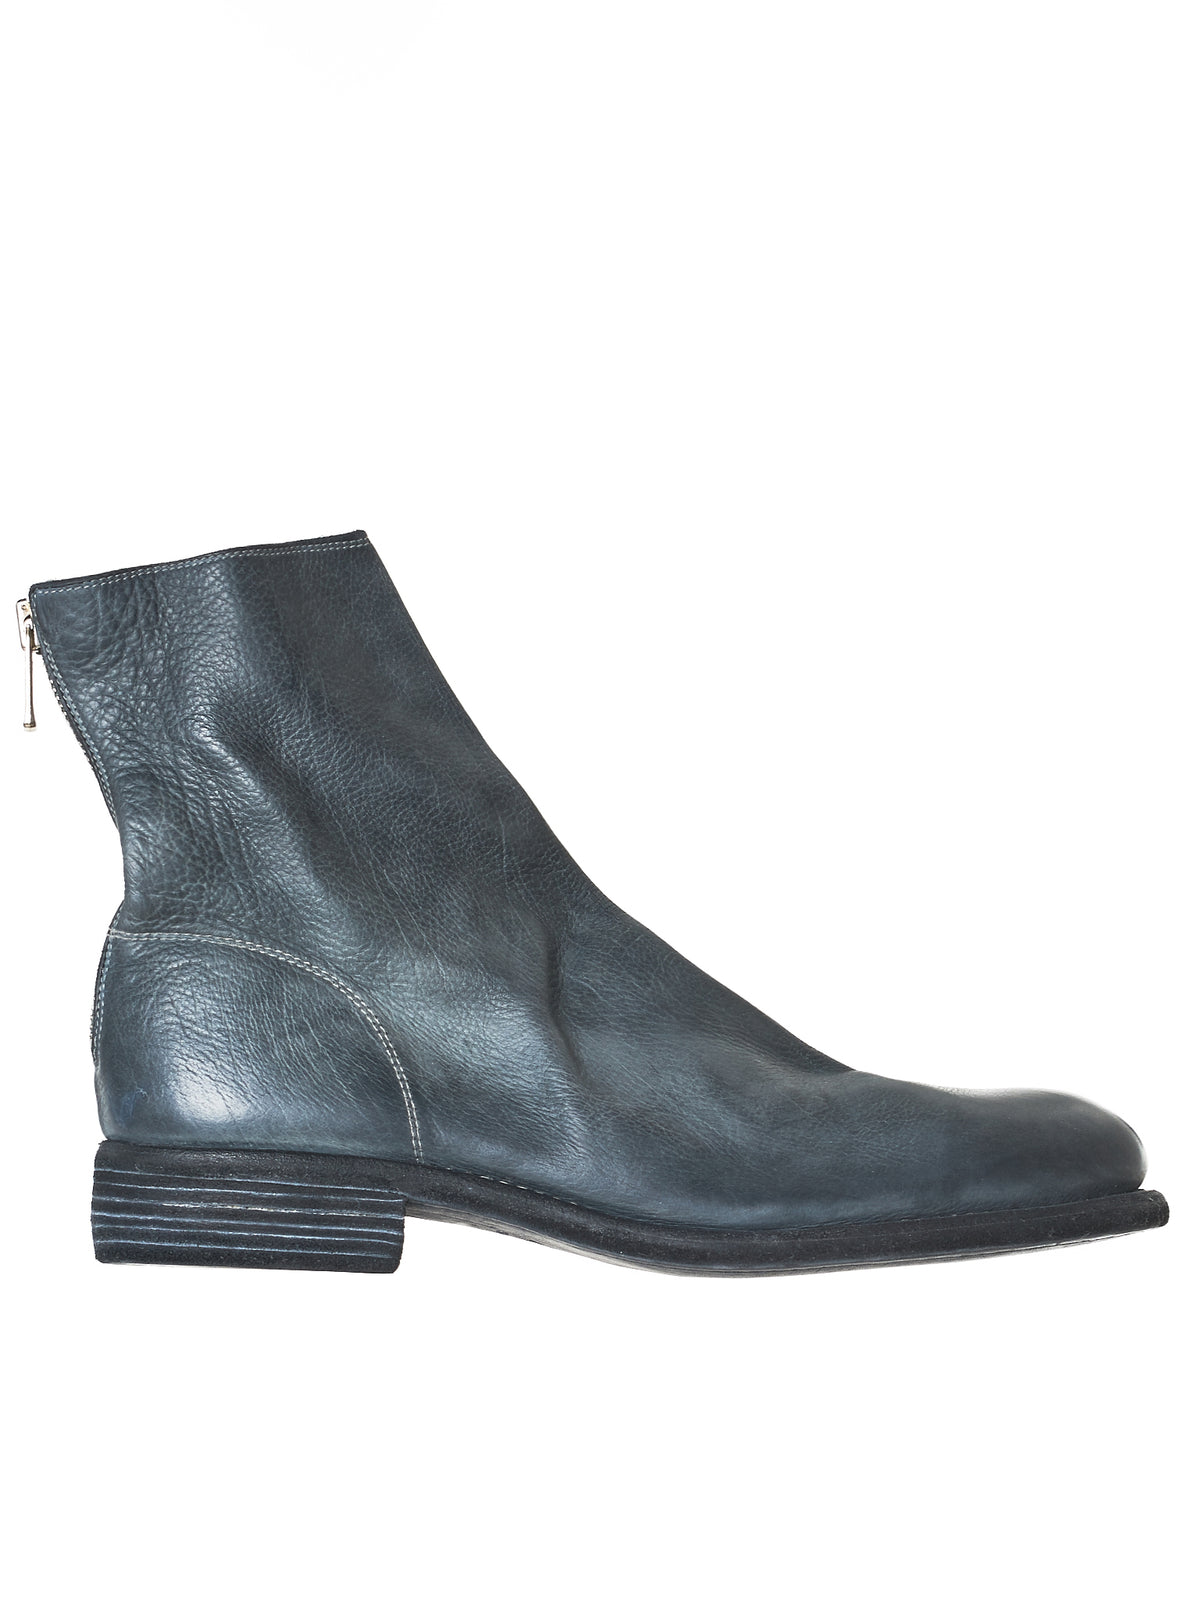 Issey Miyake Men Black Leather Chelsea Boots